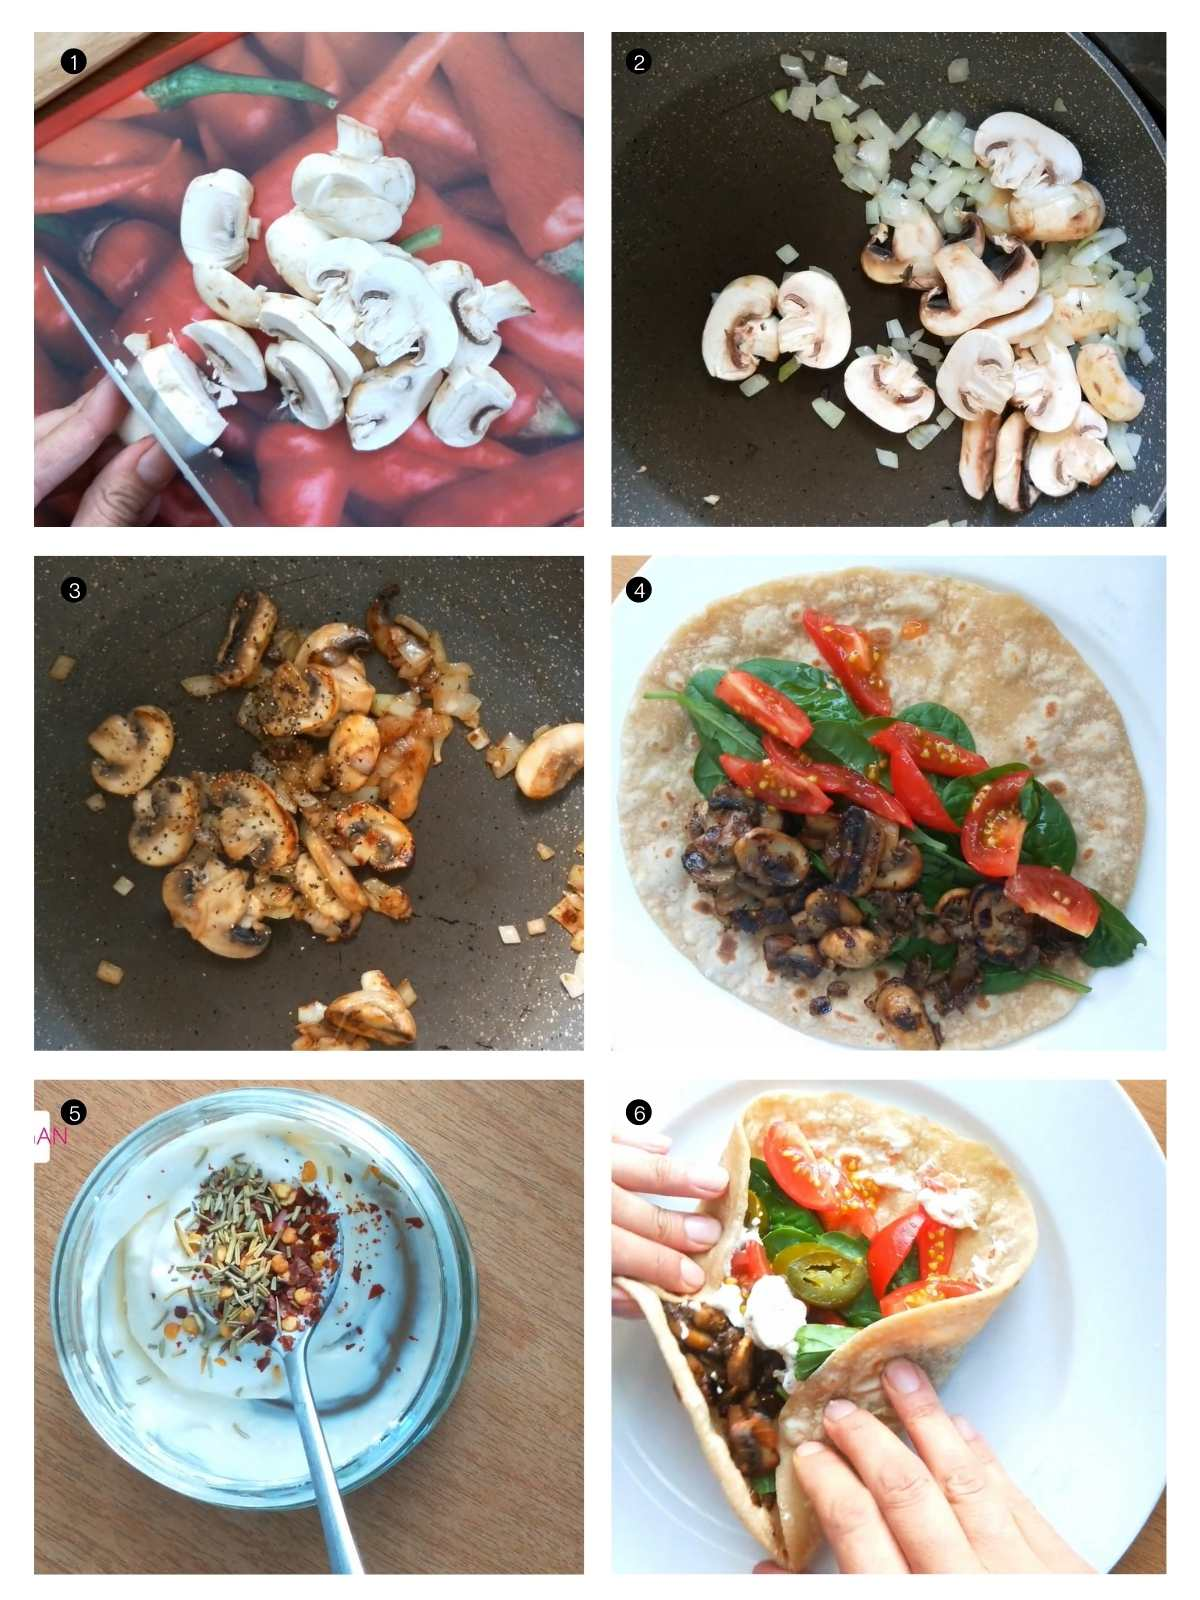 step by step process shots of how to make mushroom wrap